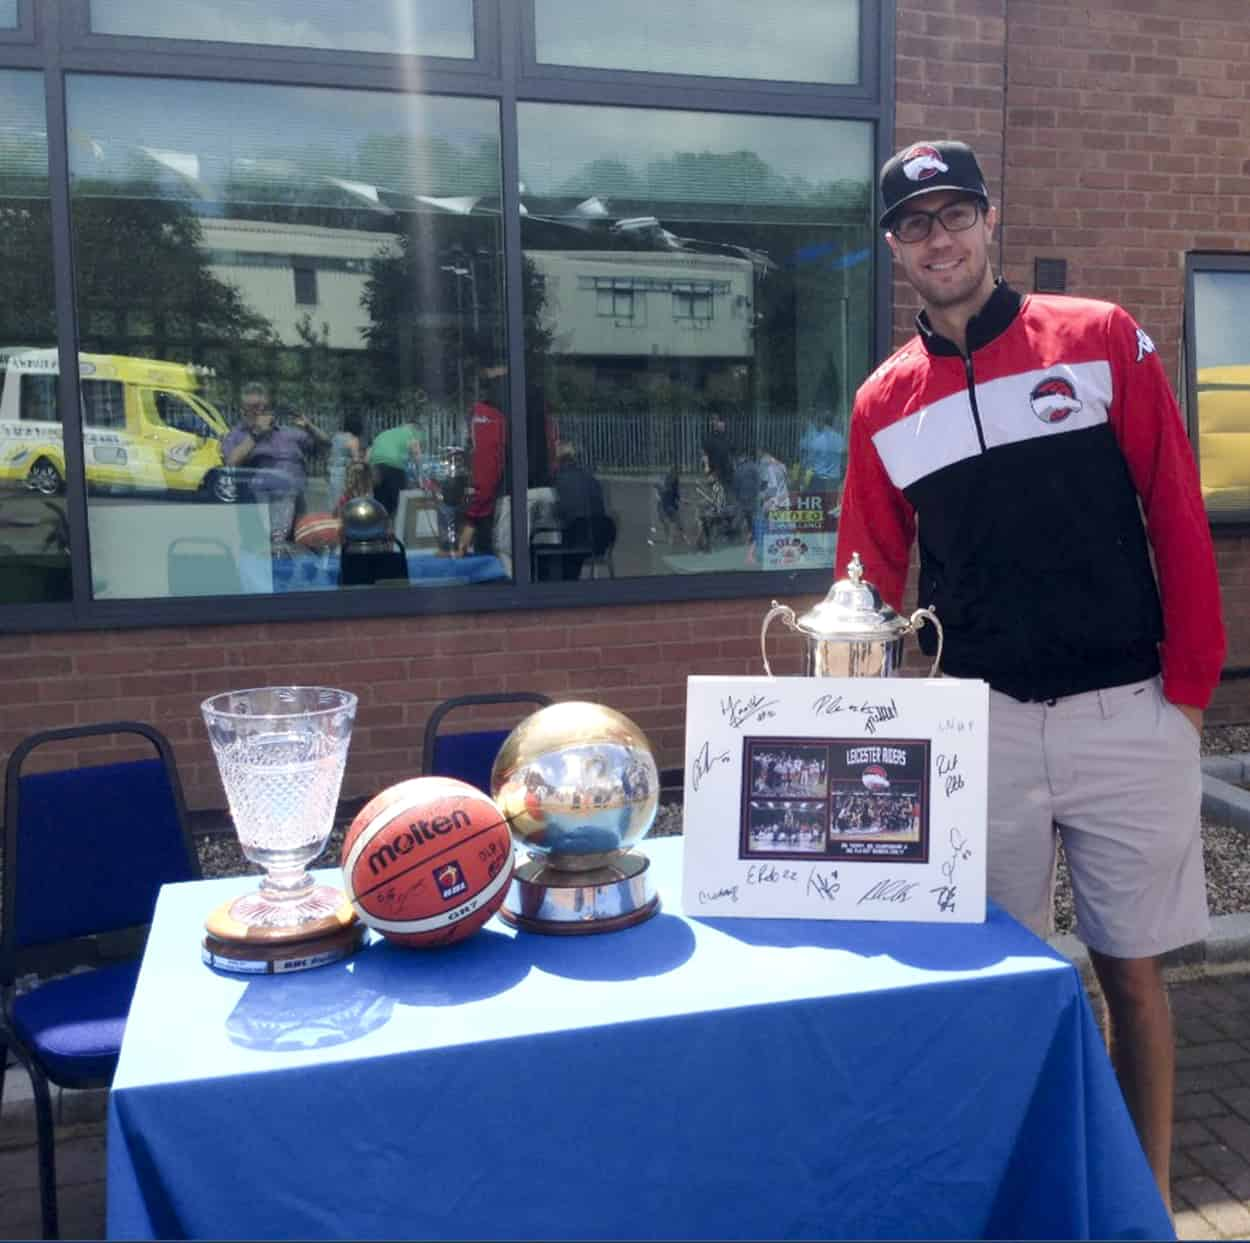 Leicester Riders Trophies